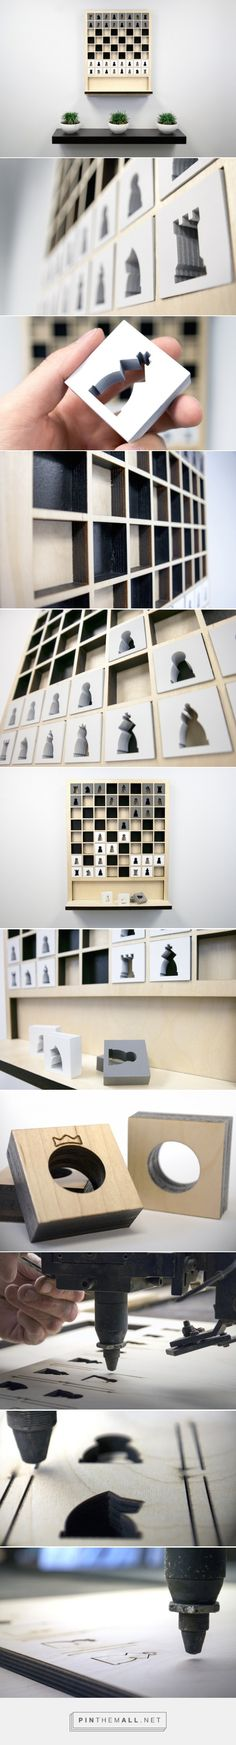 Wall Hanging Chess Board – Fubiz Media - created on 2015-12-17 23:18:06